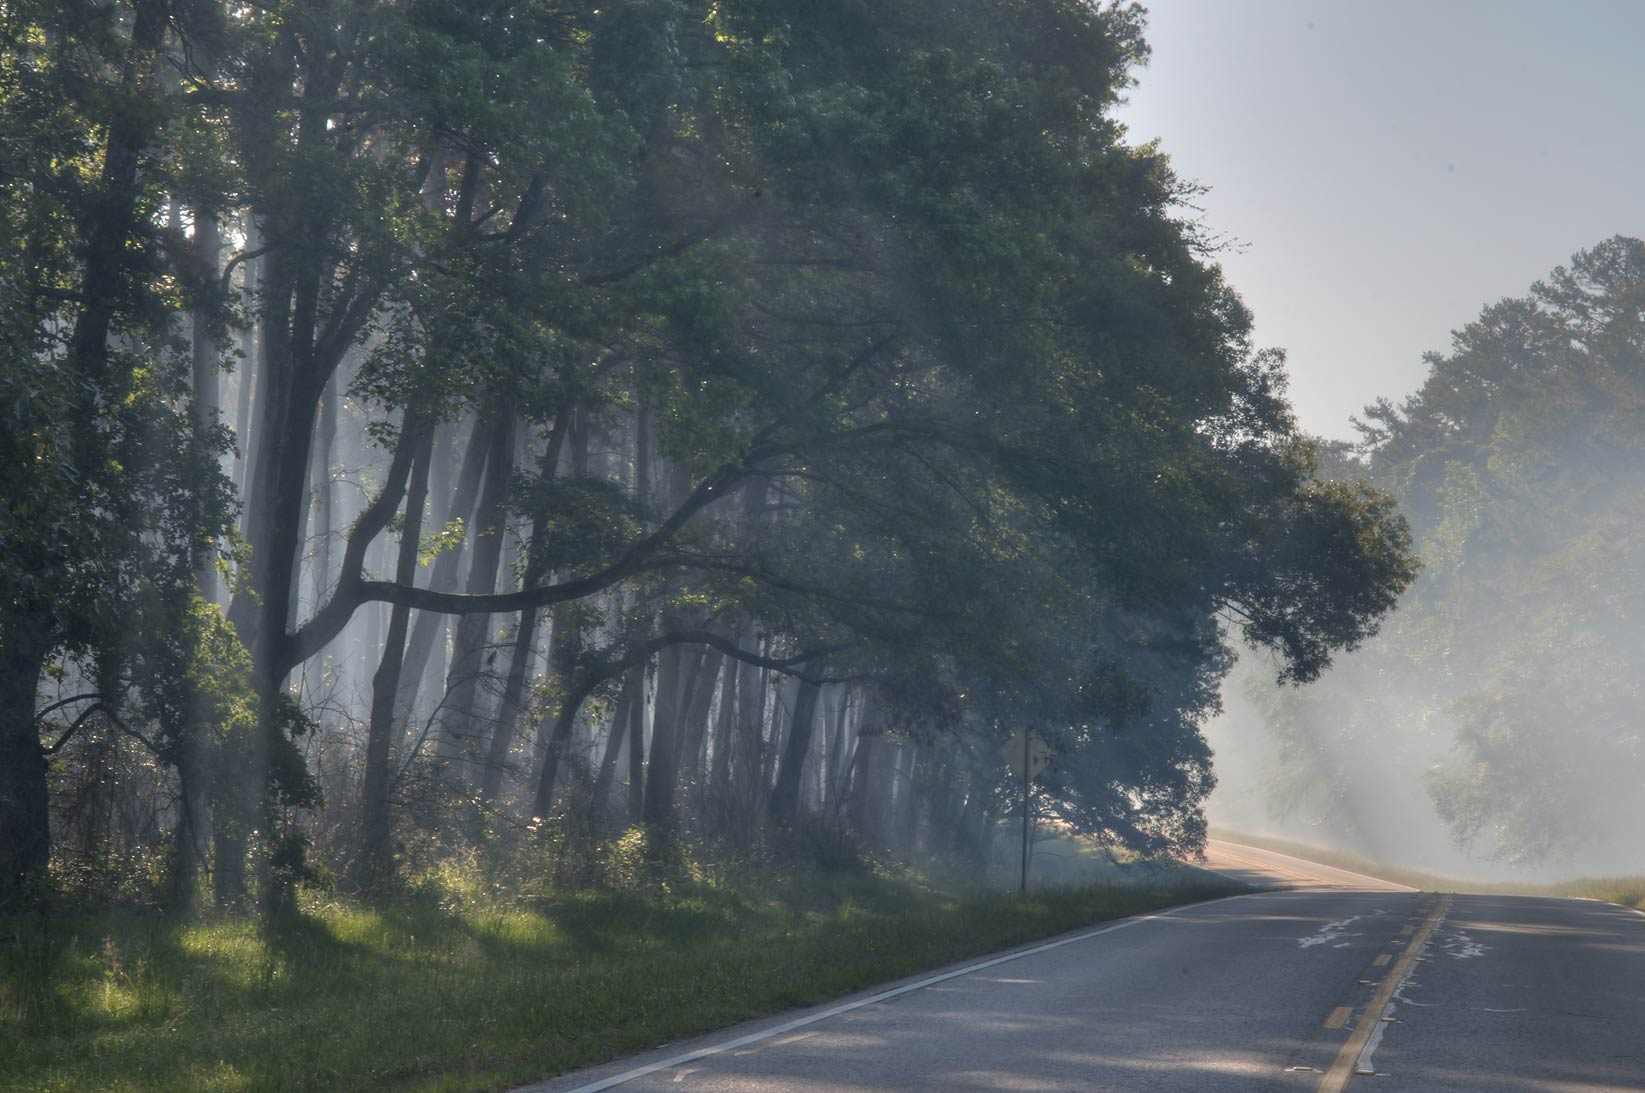 Smoke from controlled burn on Rd. FM 1375 in Sam...National Forest. Huntsville, Texas